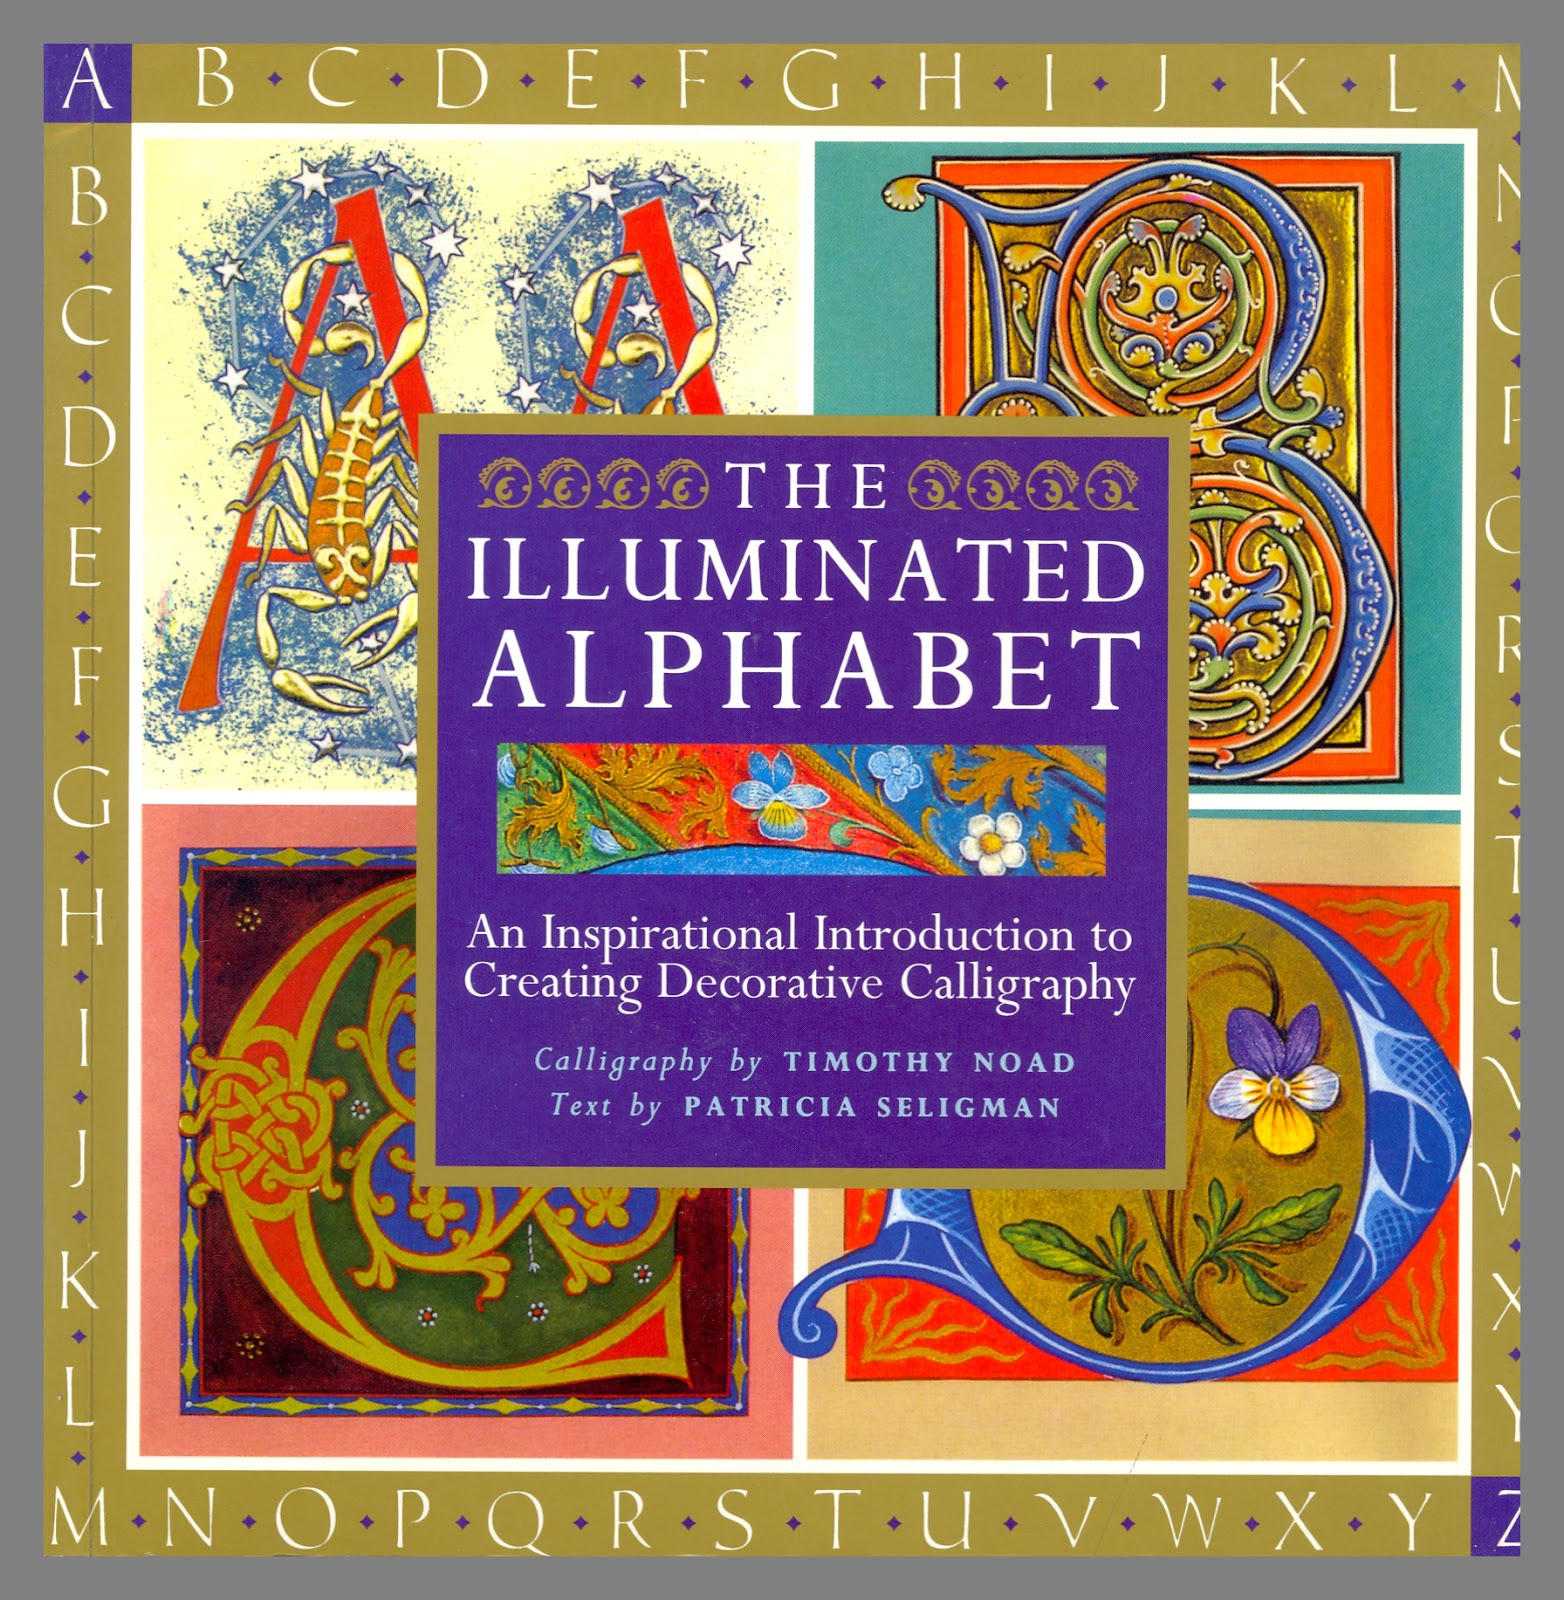 an introduction to illuminated manuscripts If searching for the ebook by john p harthan an introduction to illuminated manuscripts (v & a introductions to the decorative arts) in pdf form, then you've come to the faithful website.